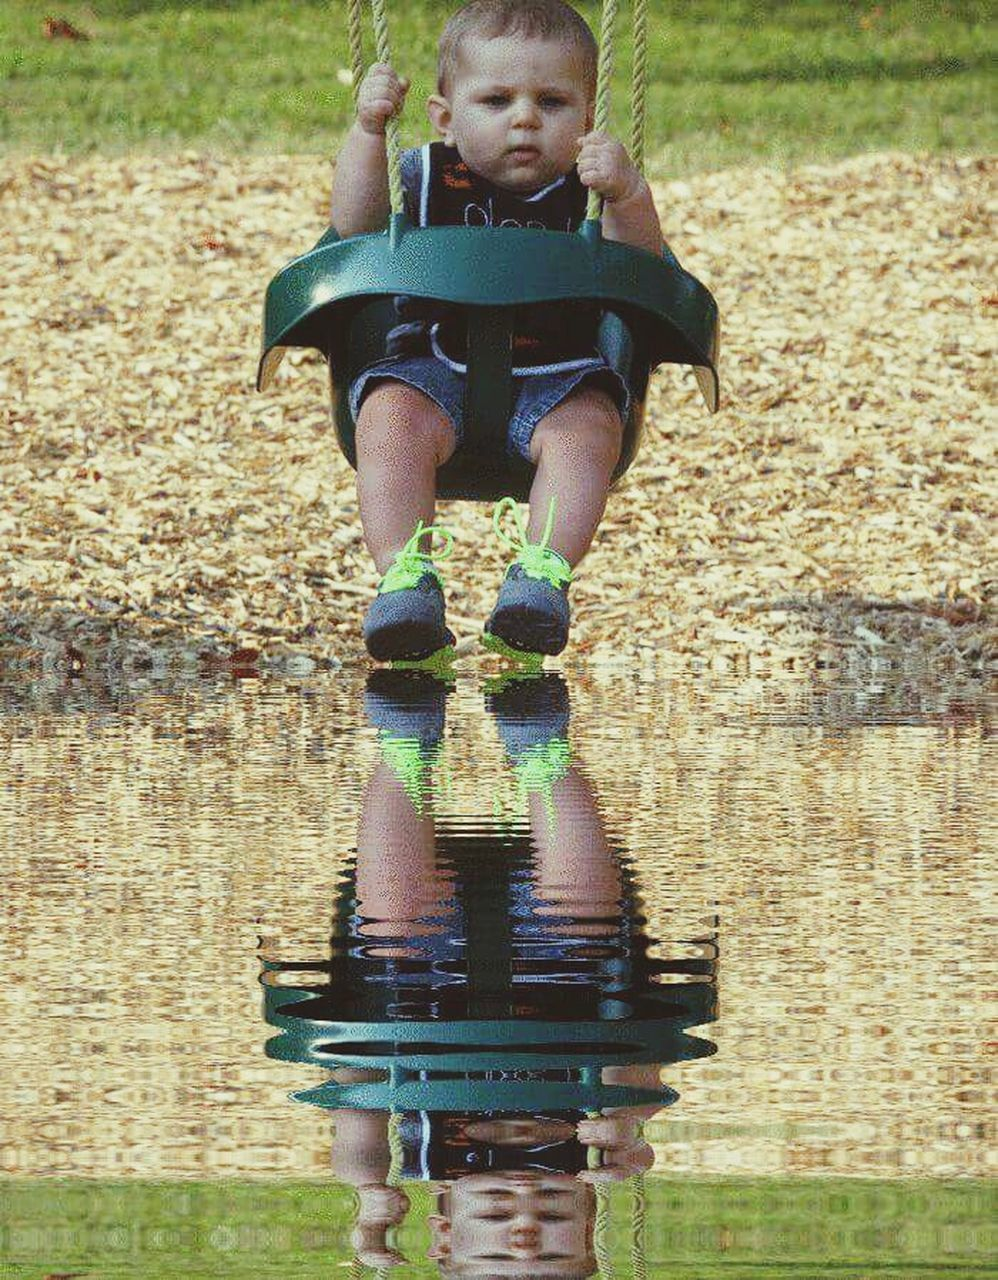 childhood, one person, full length, front view, outdoors, boys, day, males, portrait, smiling, child, playing, happiness, real people, puddle, grass, children only, one boy only, water, nature, people